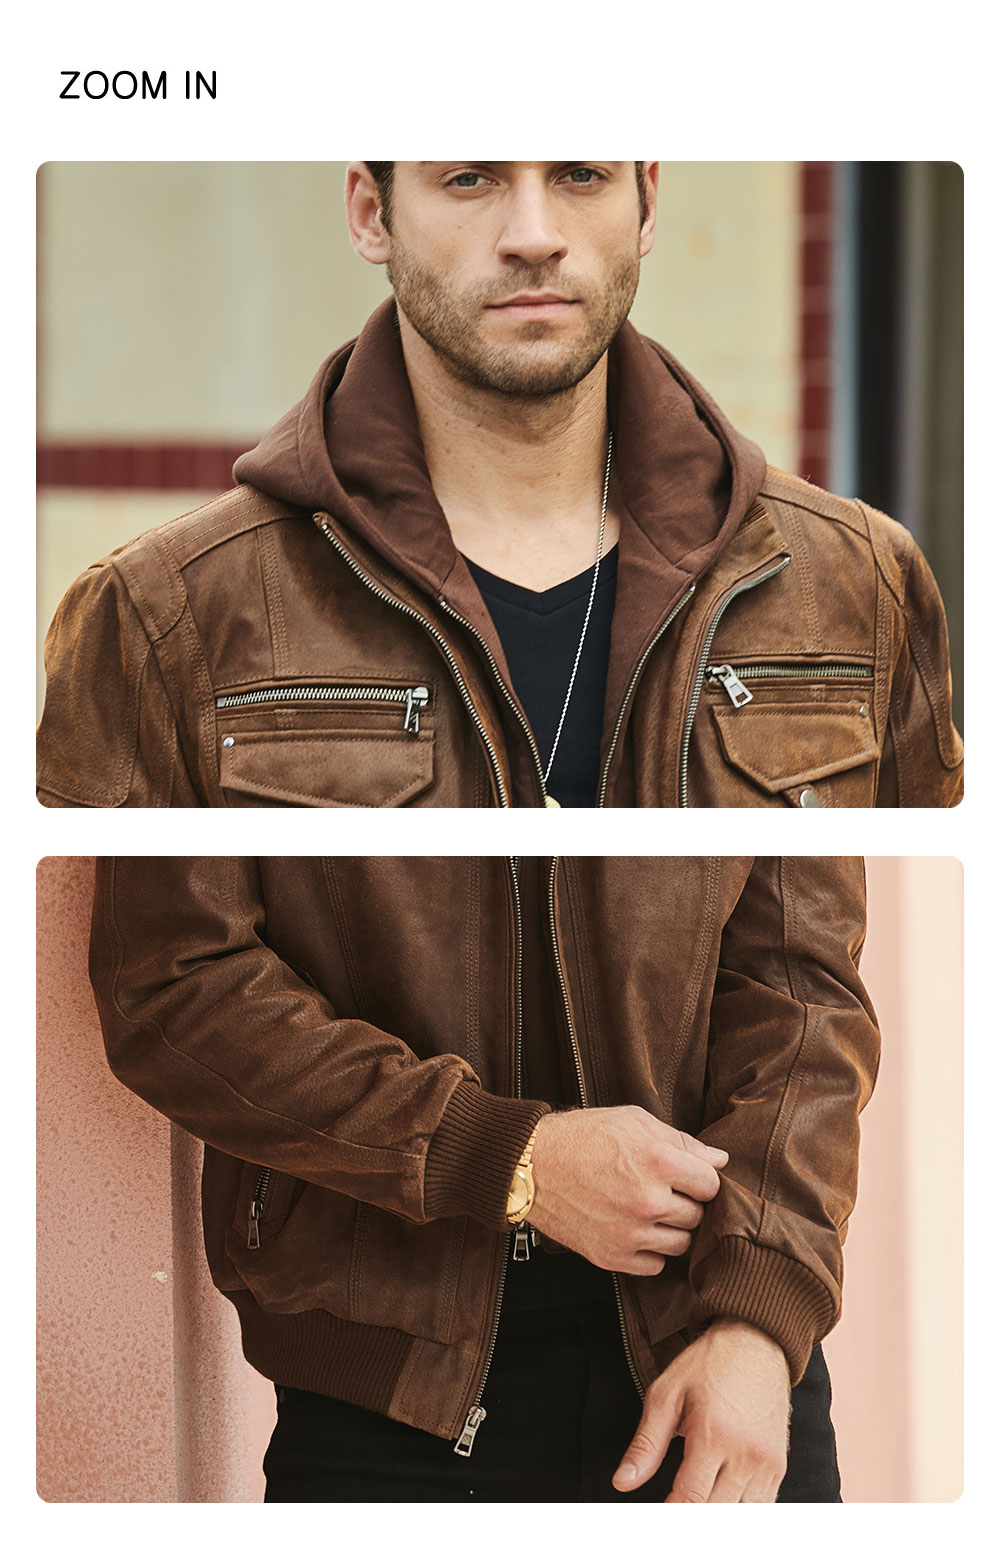 H73b0782ea5894ac7ac58c26de6323db4k FLAVOR New Men's Real Leather Jacket with Removable Hood Brown Jacket Genuine Leather Warm Coat For Men